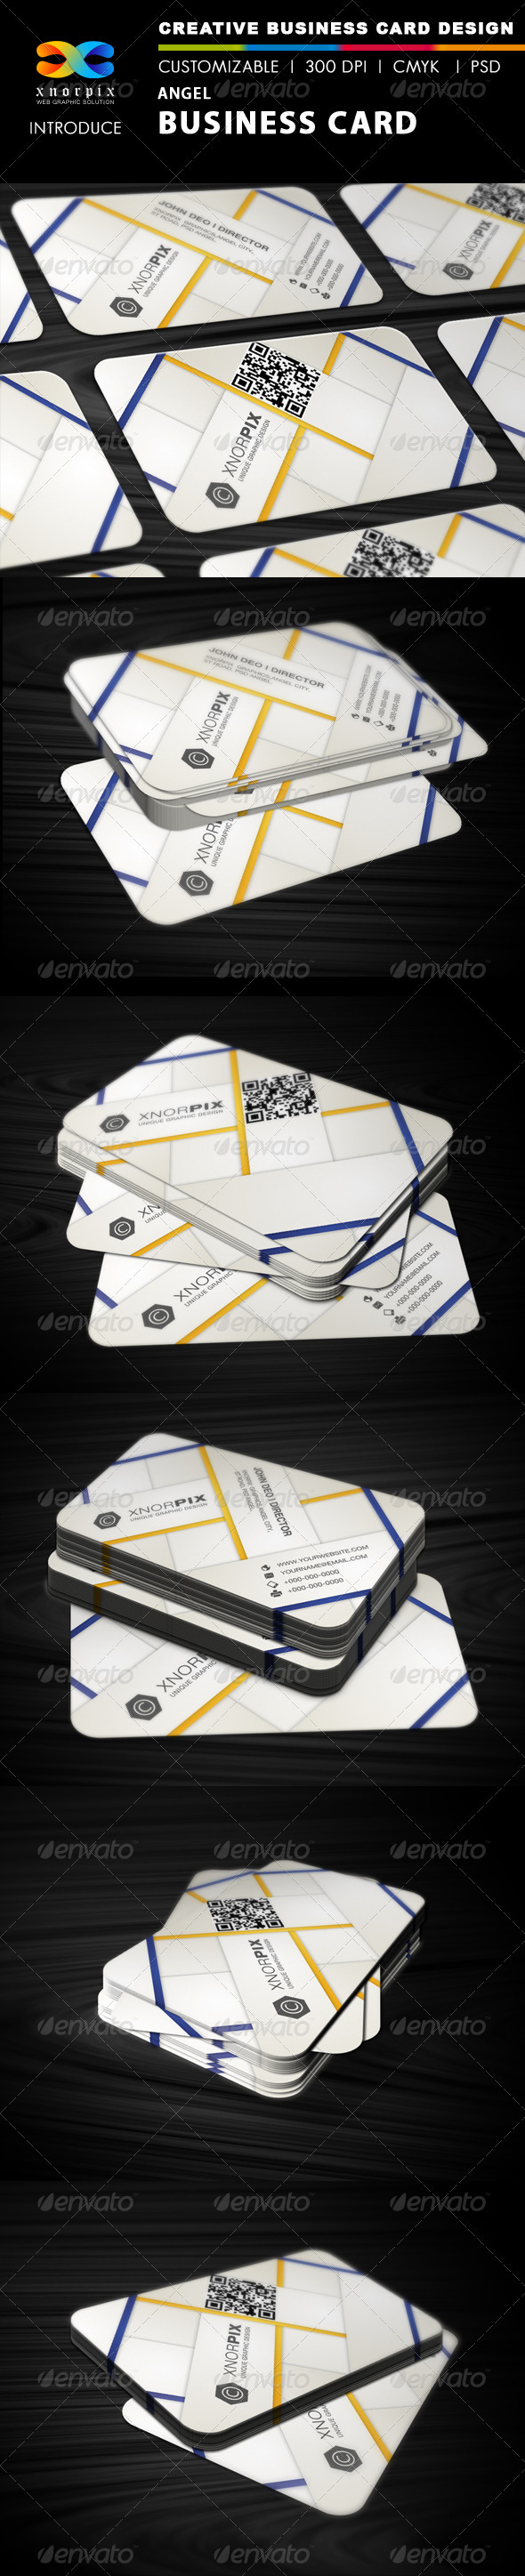 Angel Business Card - Corporate Business Cards